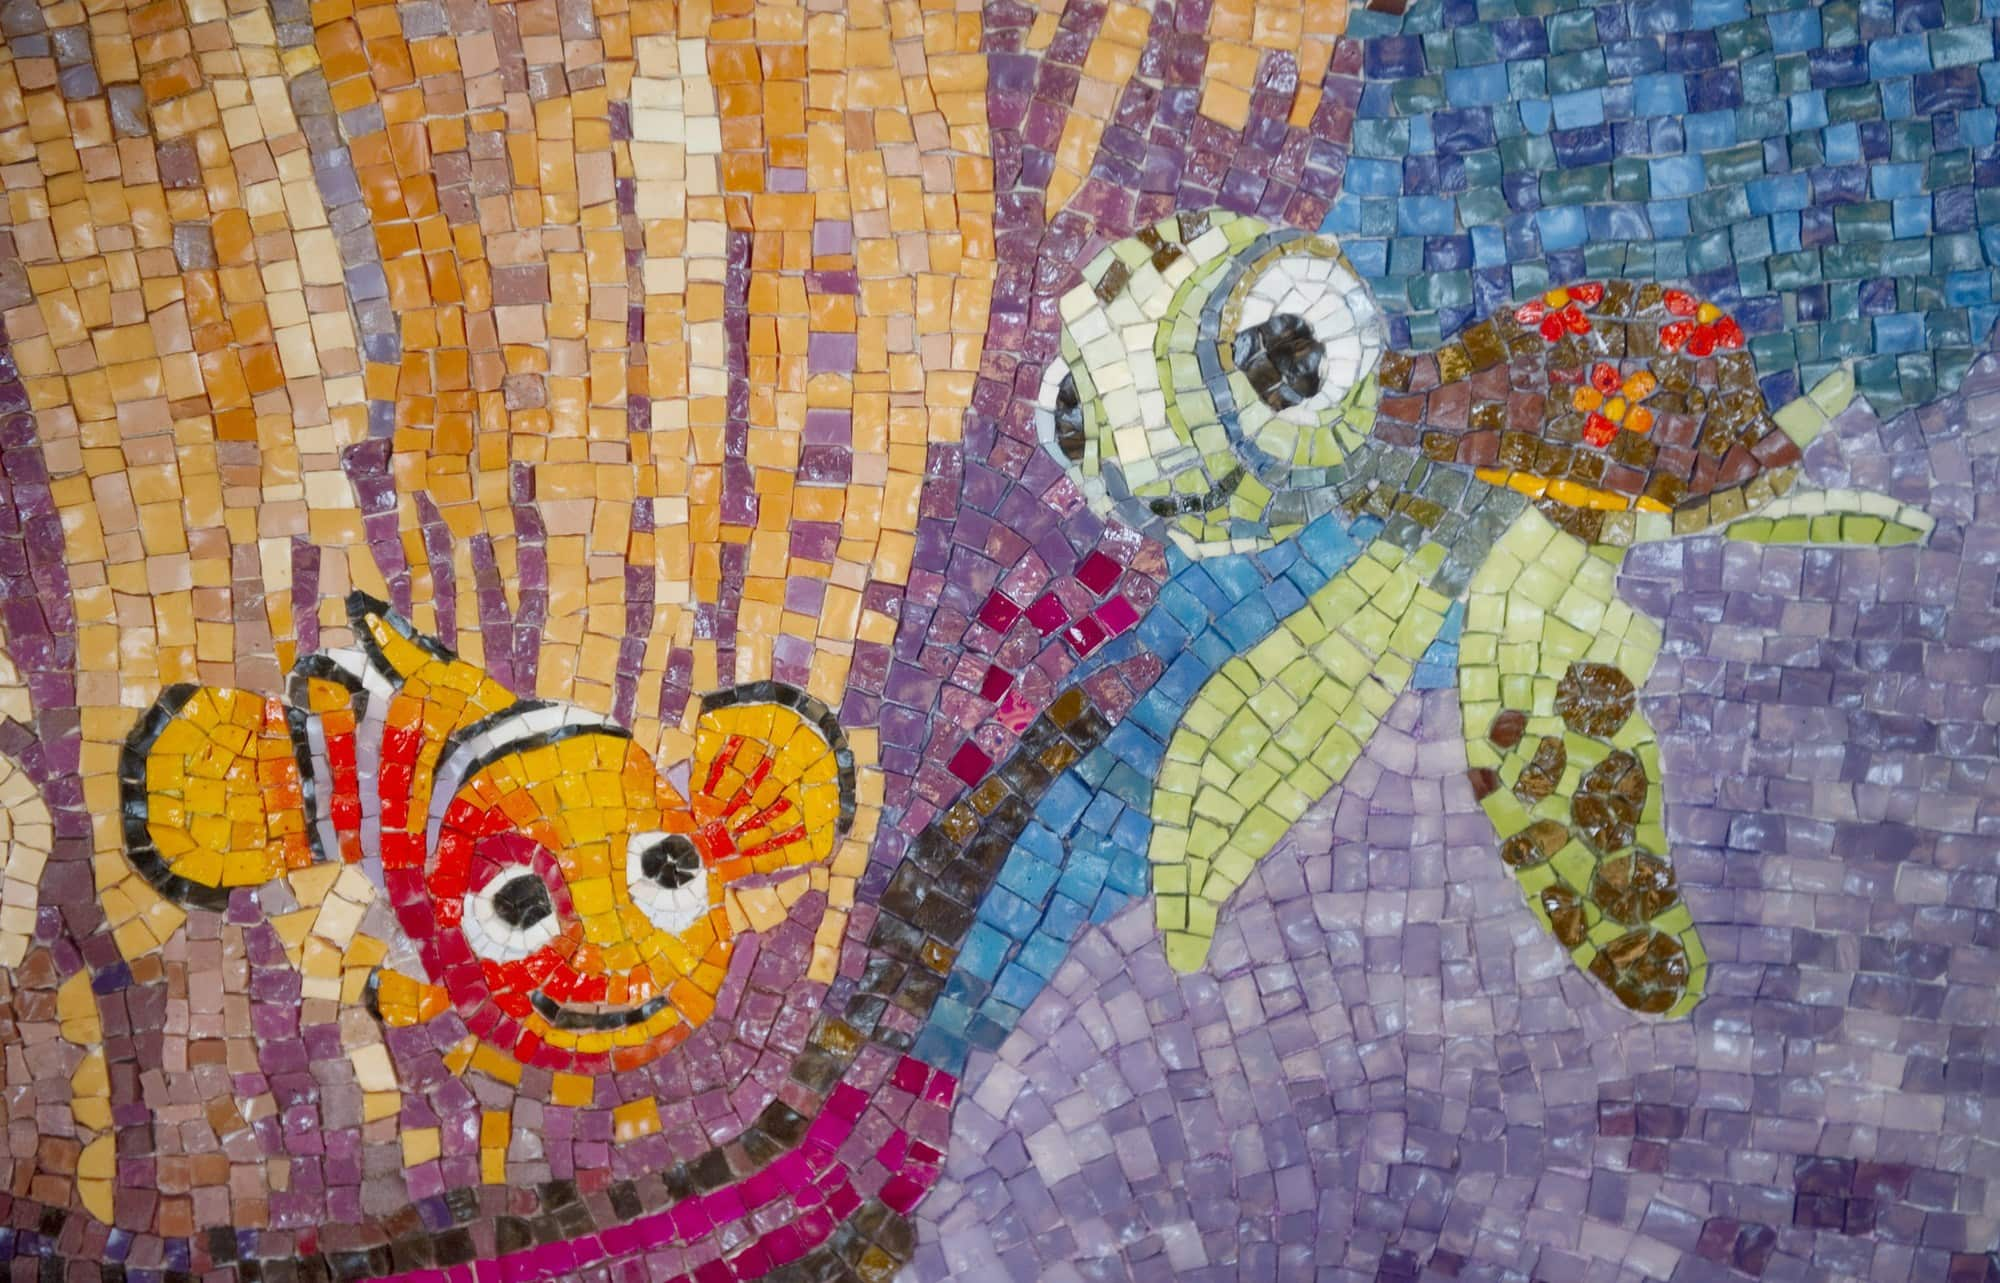 A Finding Nemo-themed mosaic adds to the beach theme at Cabanas on Disney Dream with babies, toddlers and children